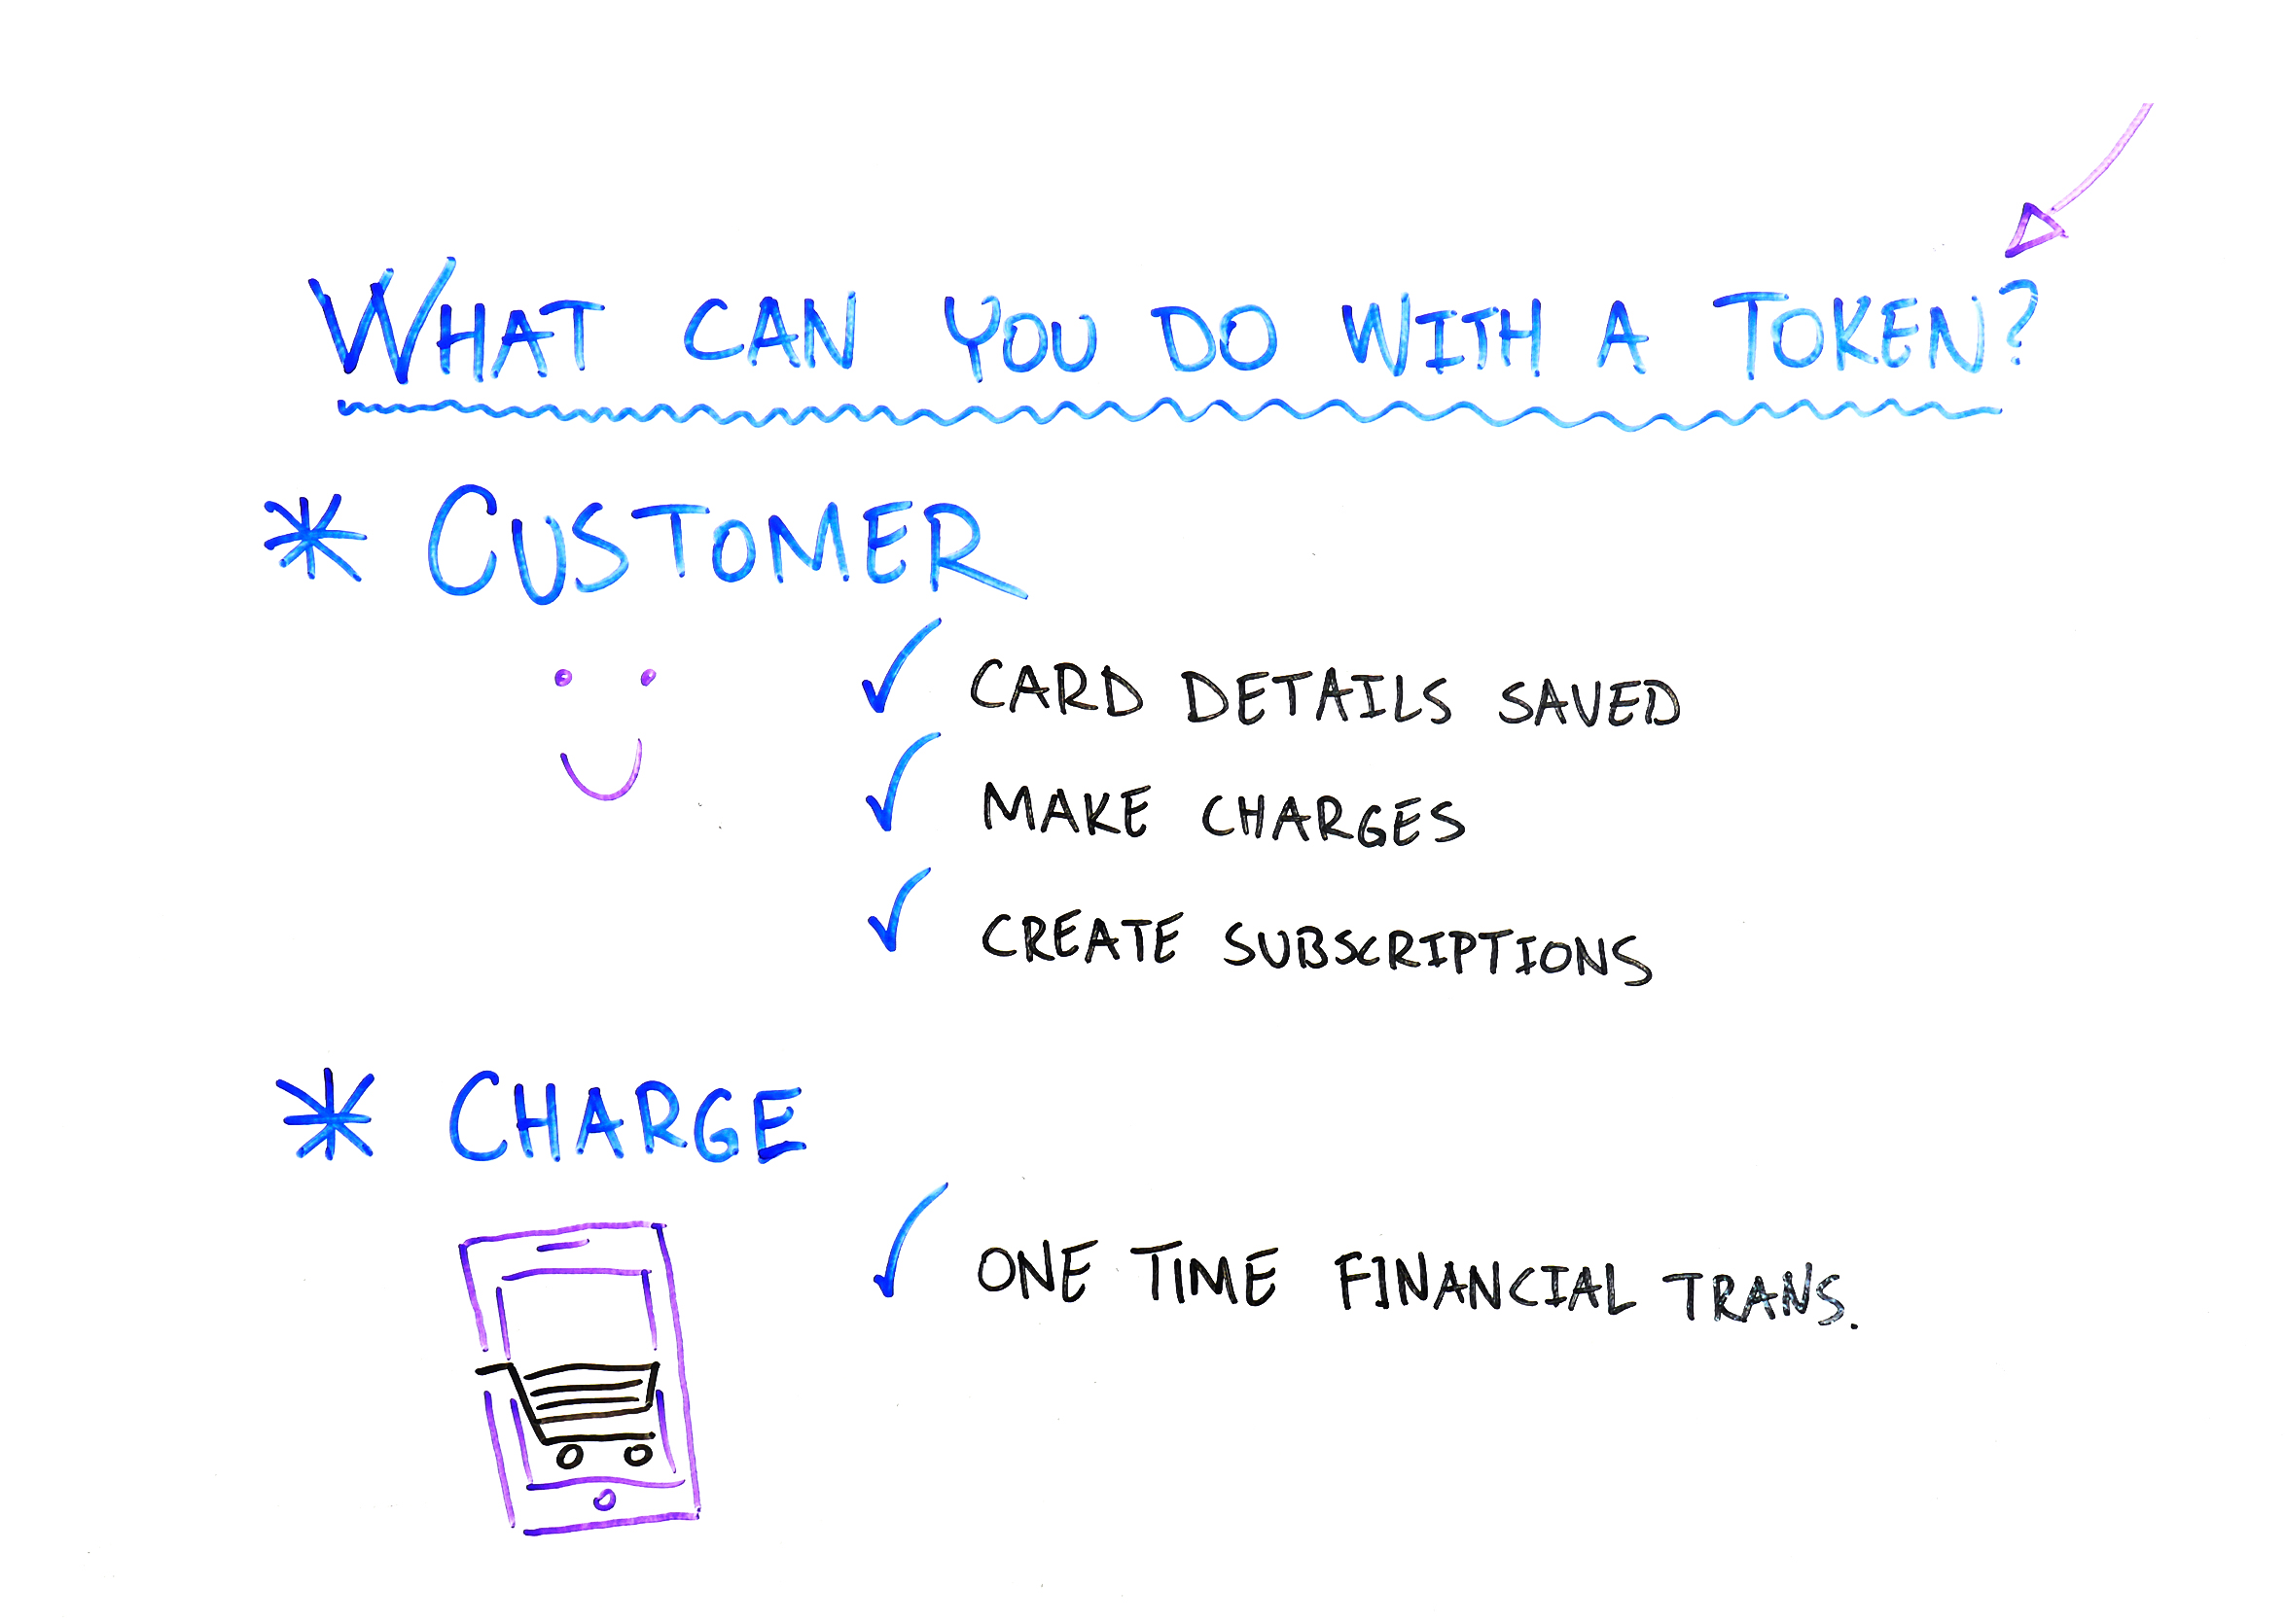 What can you do with a token